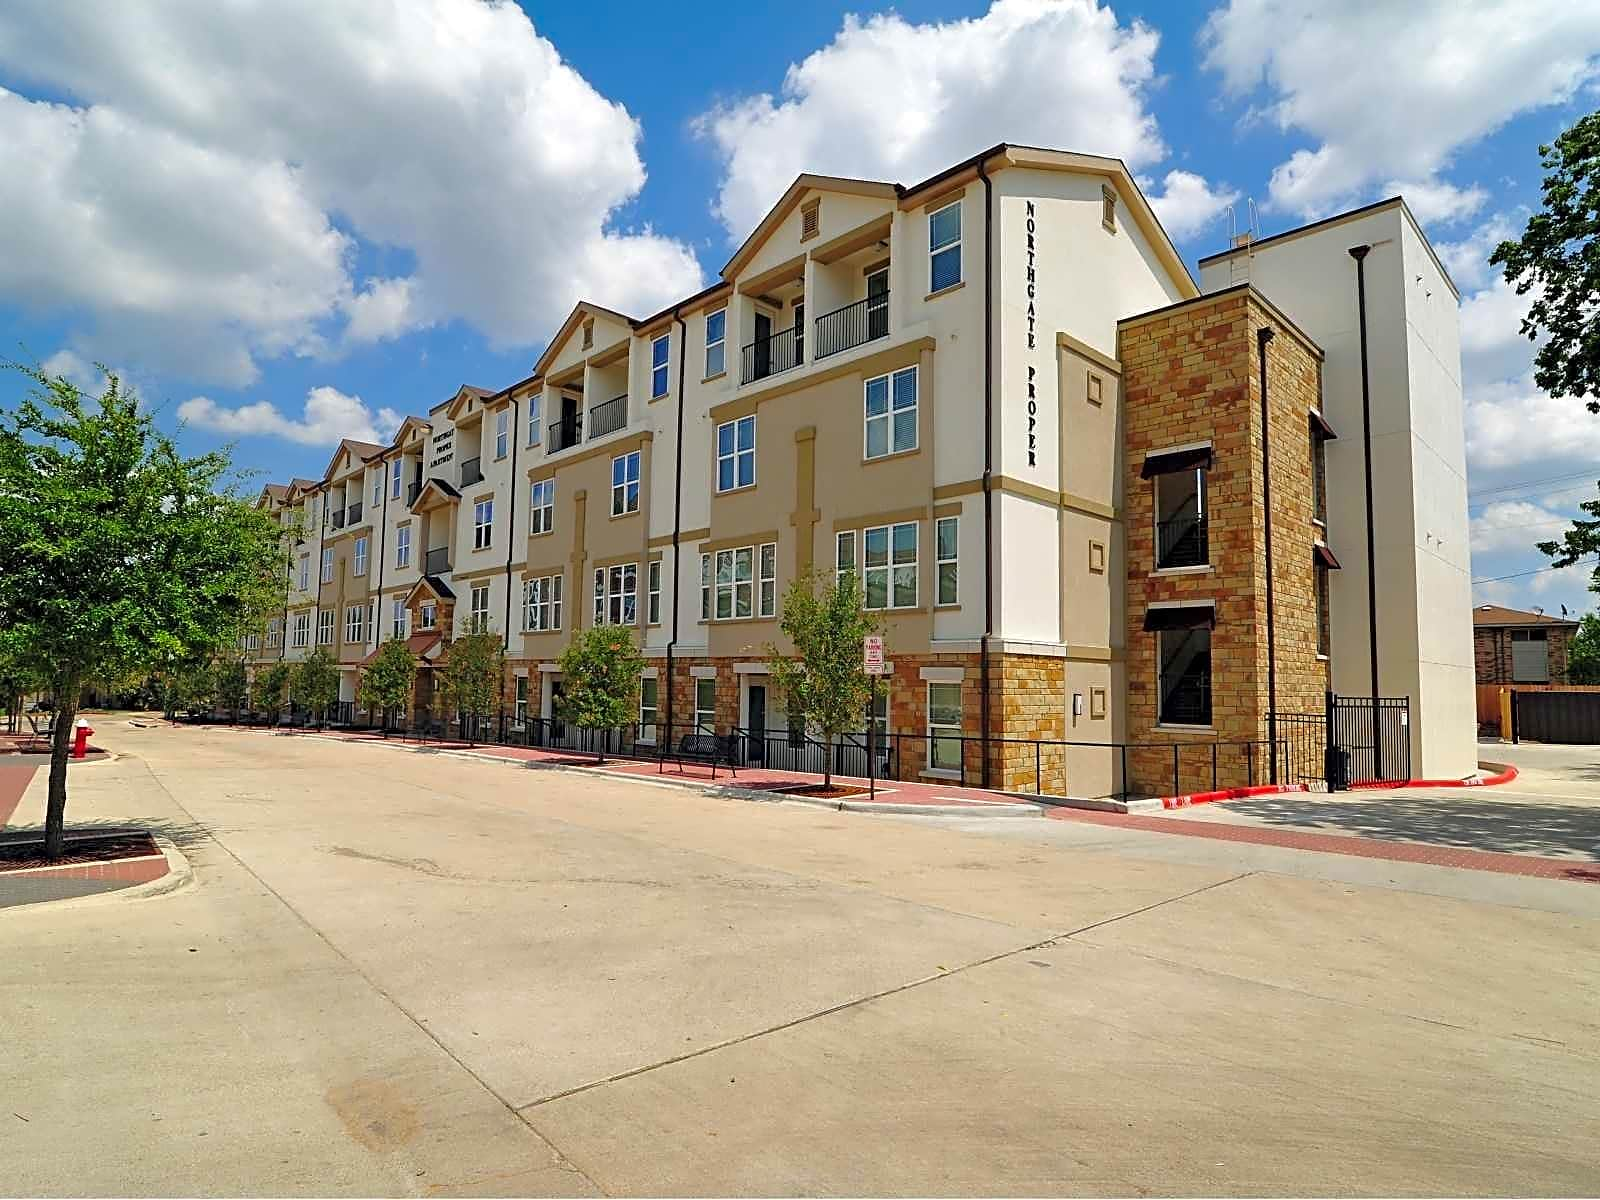 Apartments Near Texas A&M Northgate Proper for Texas A&M University Students in College Station, TX